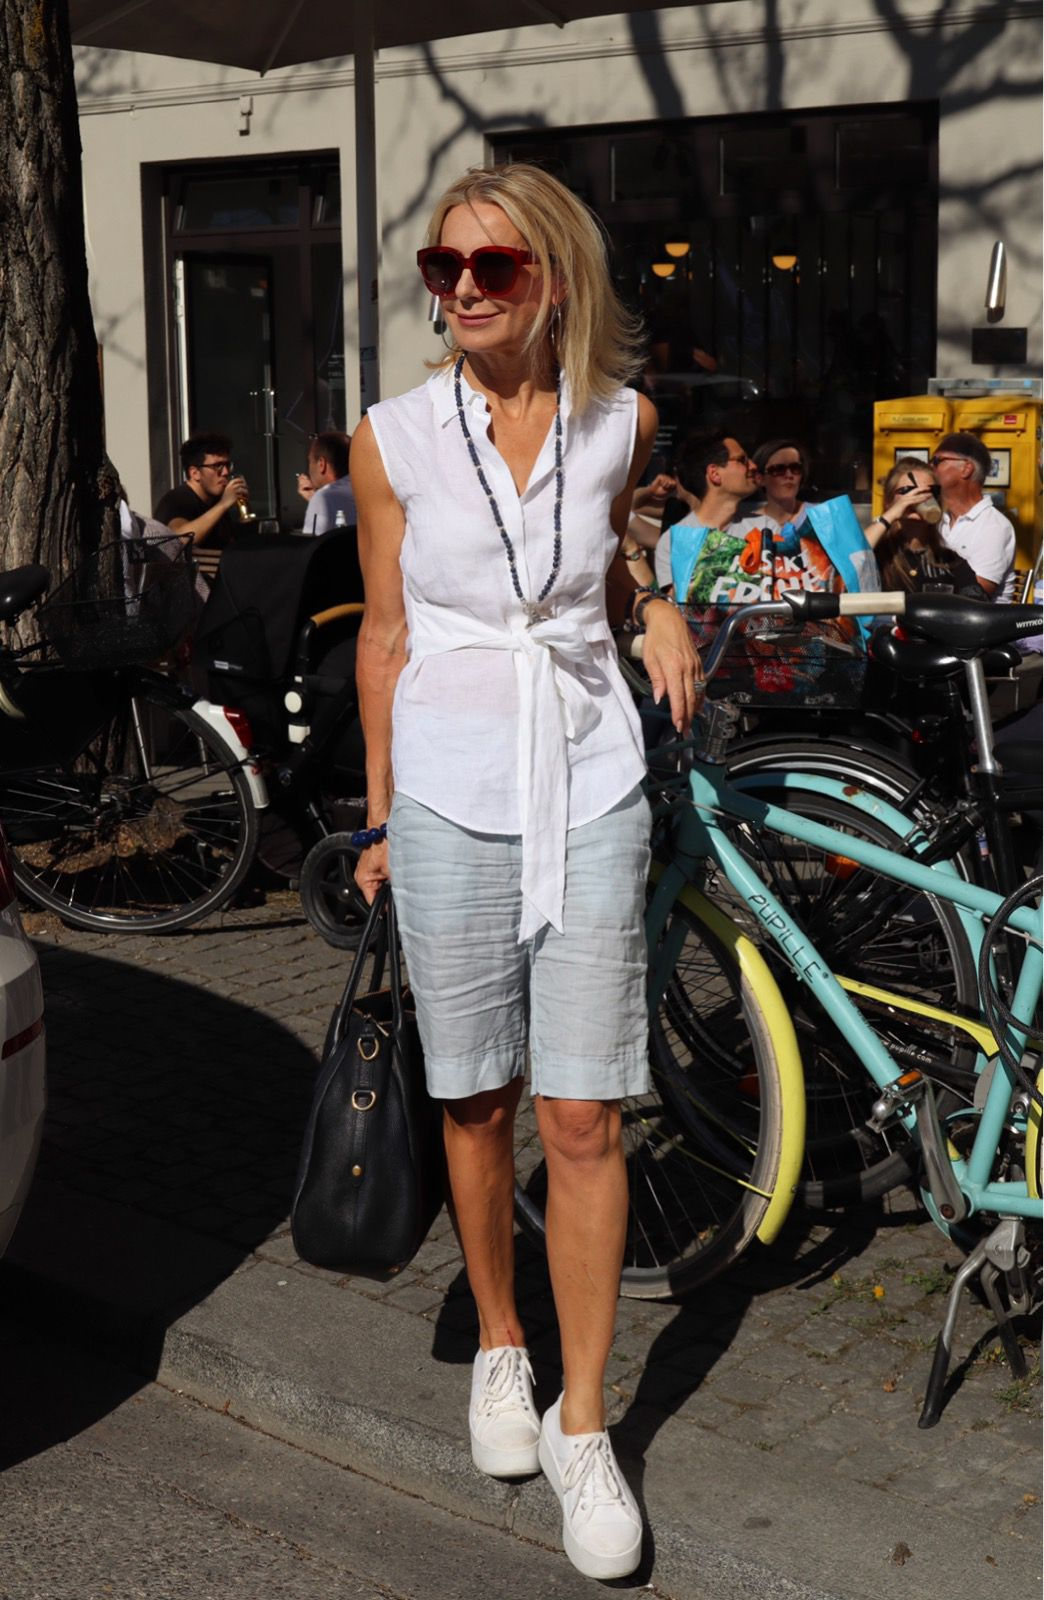 Leinen Look Für Die Fahrradtour Fashion Cool Outfits Day Trip Outfit